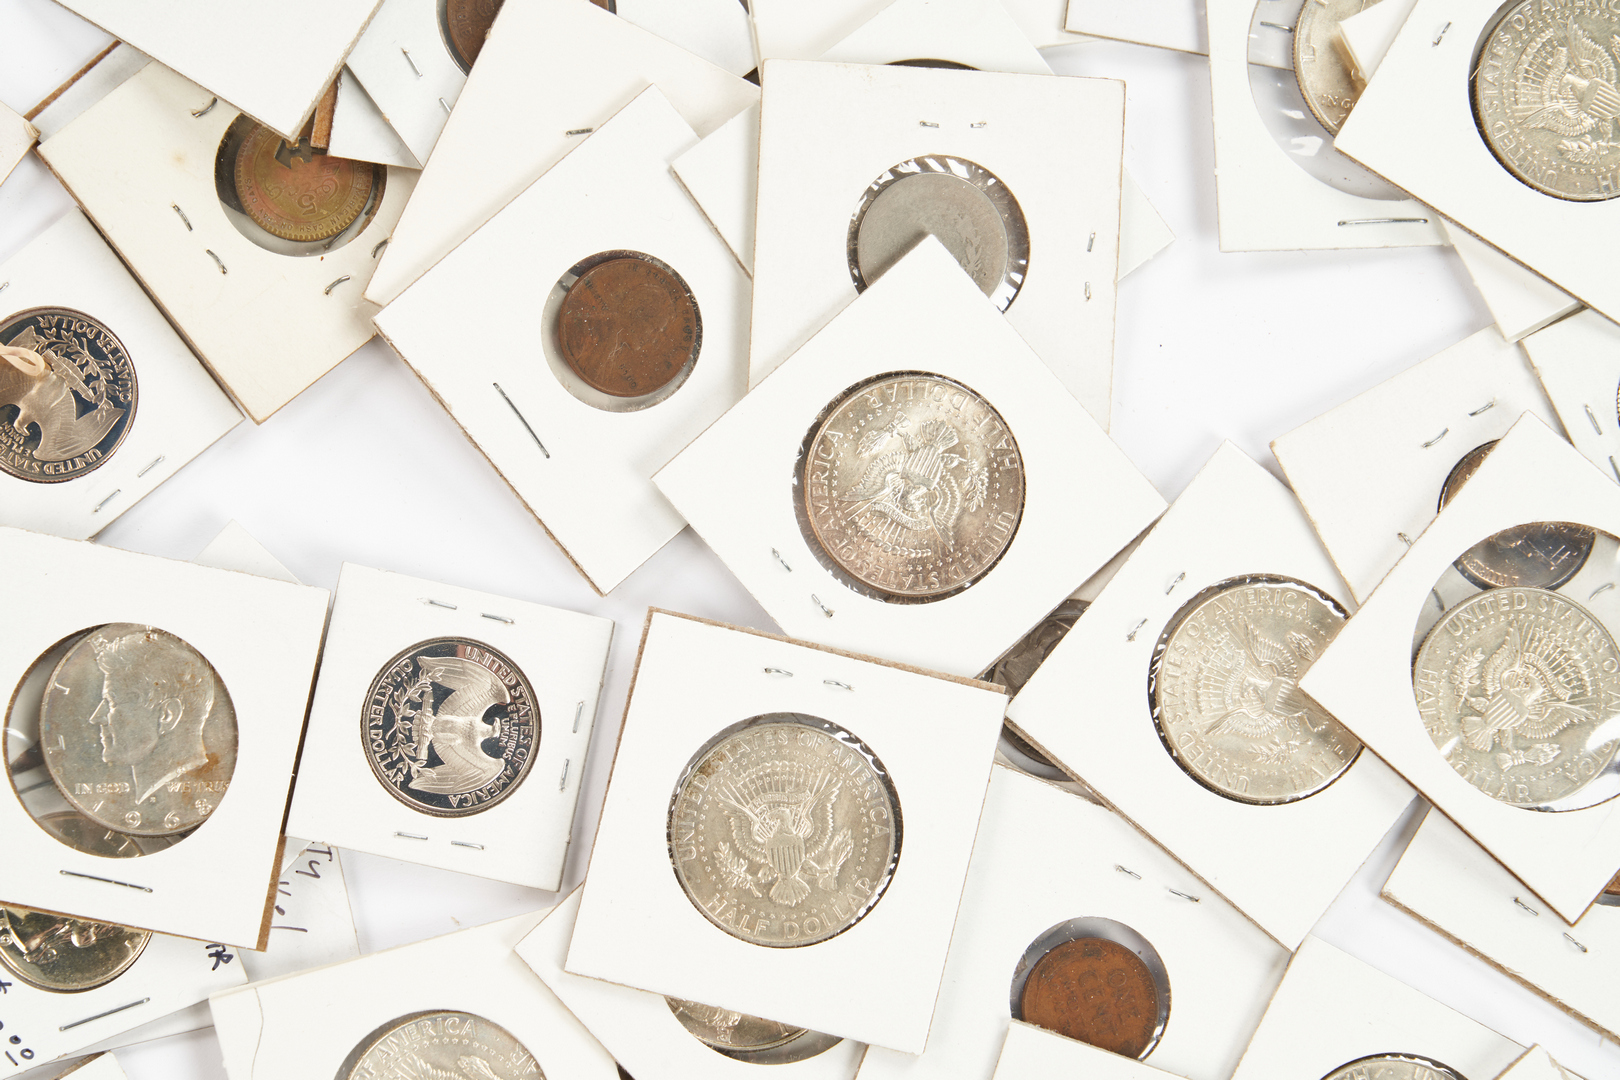 Lot 1062: 186 US Coin Items, incl. 92 90% Silver Coins